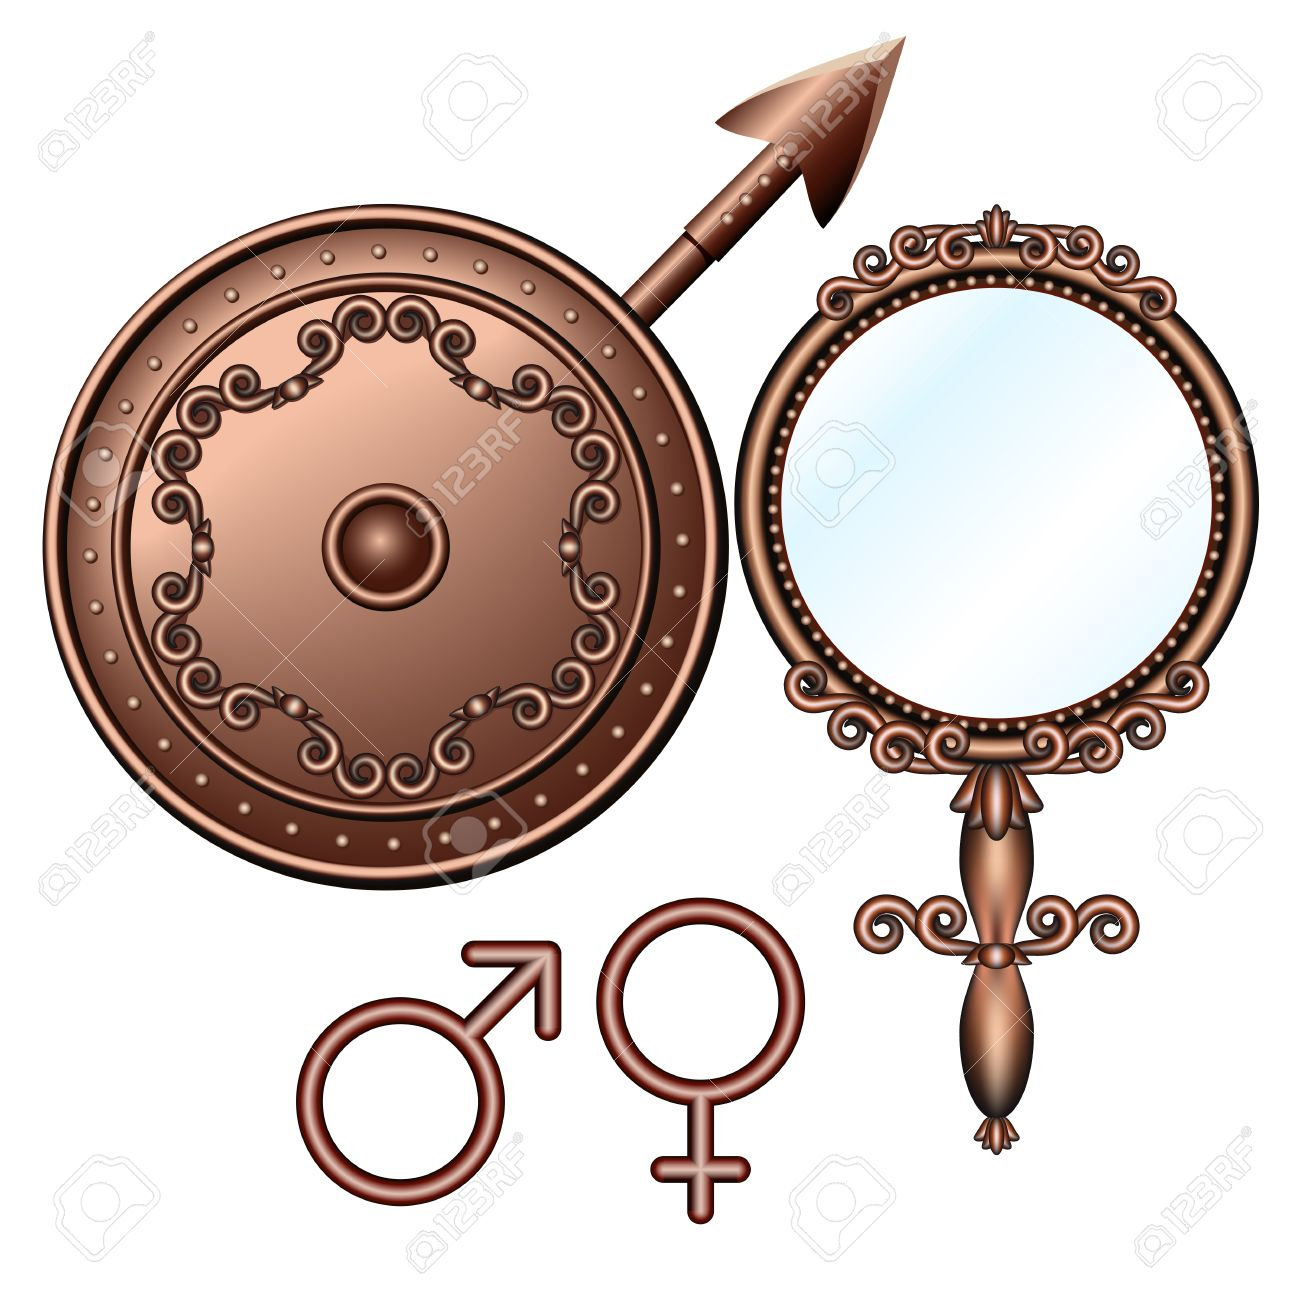 Mirror of Venus and spear of Mars - male and female symbols